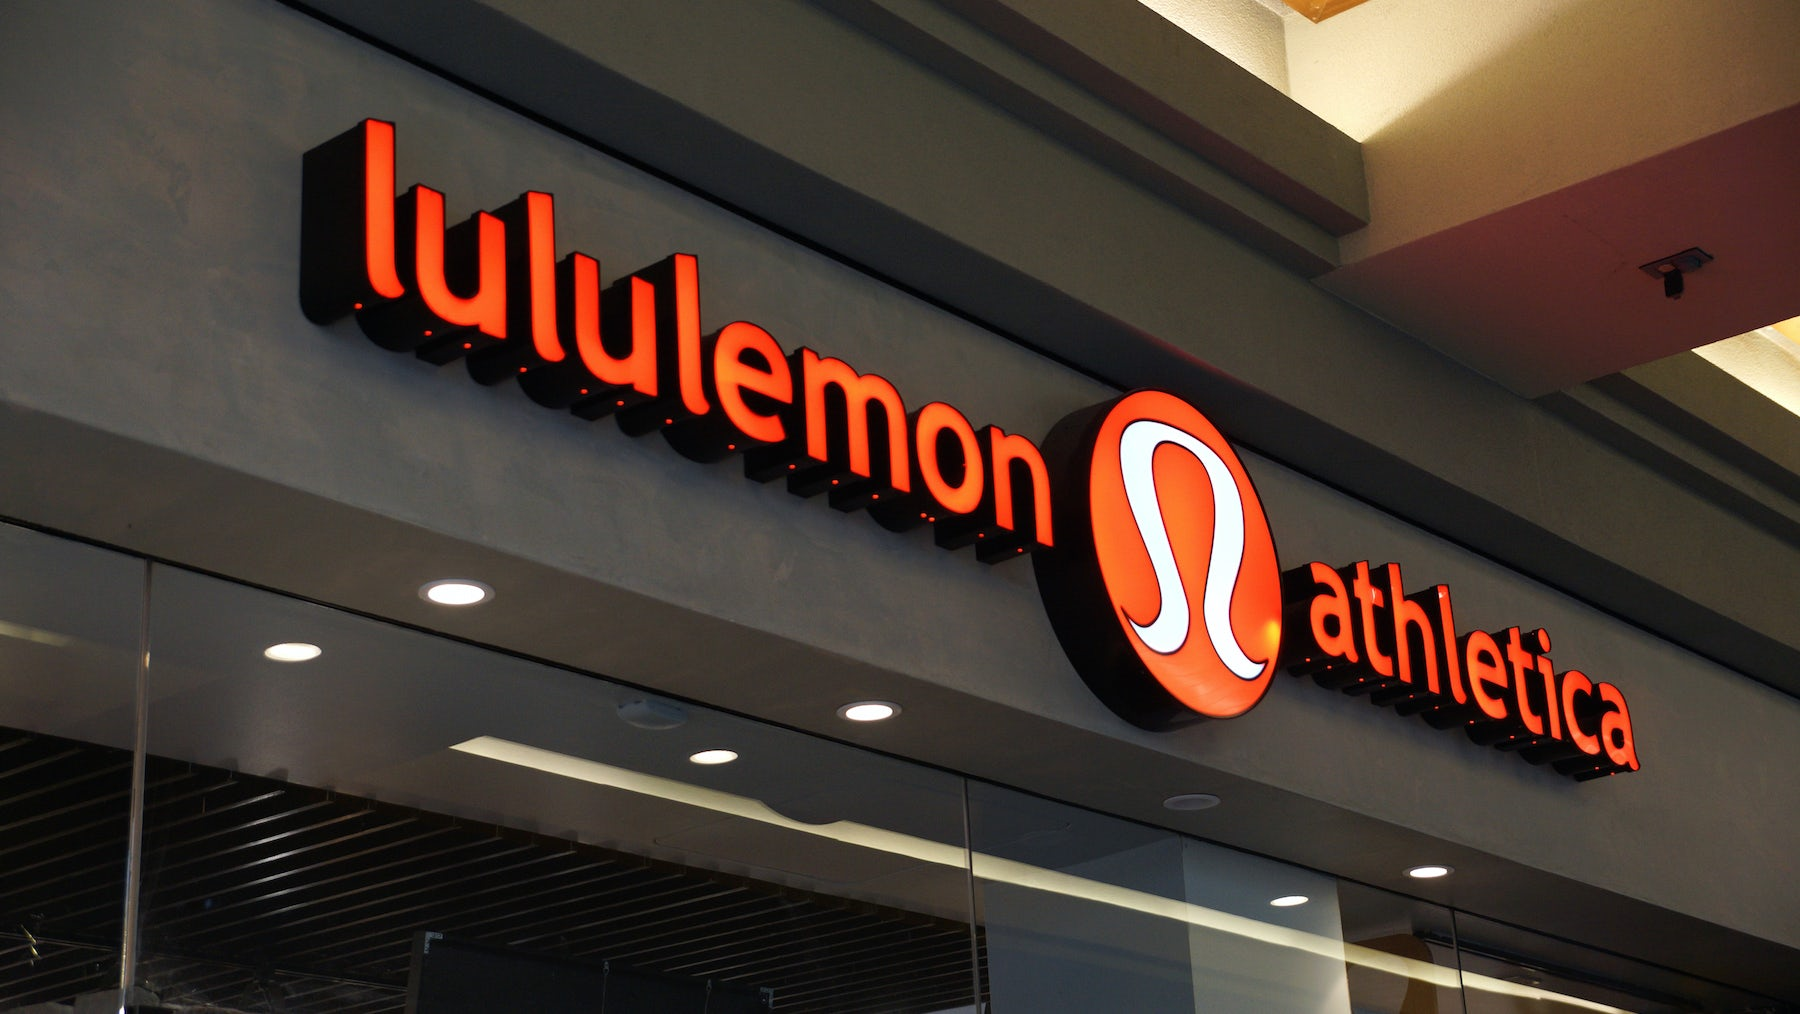 Lululemon Names Chief Financial Officer as CEO Search Continues